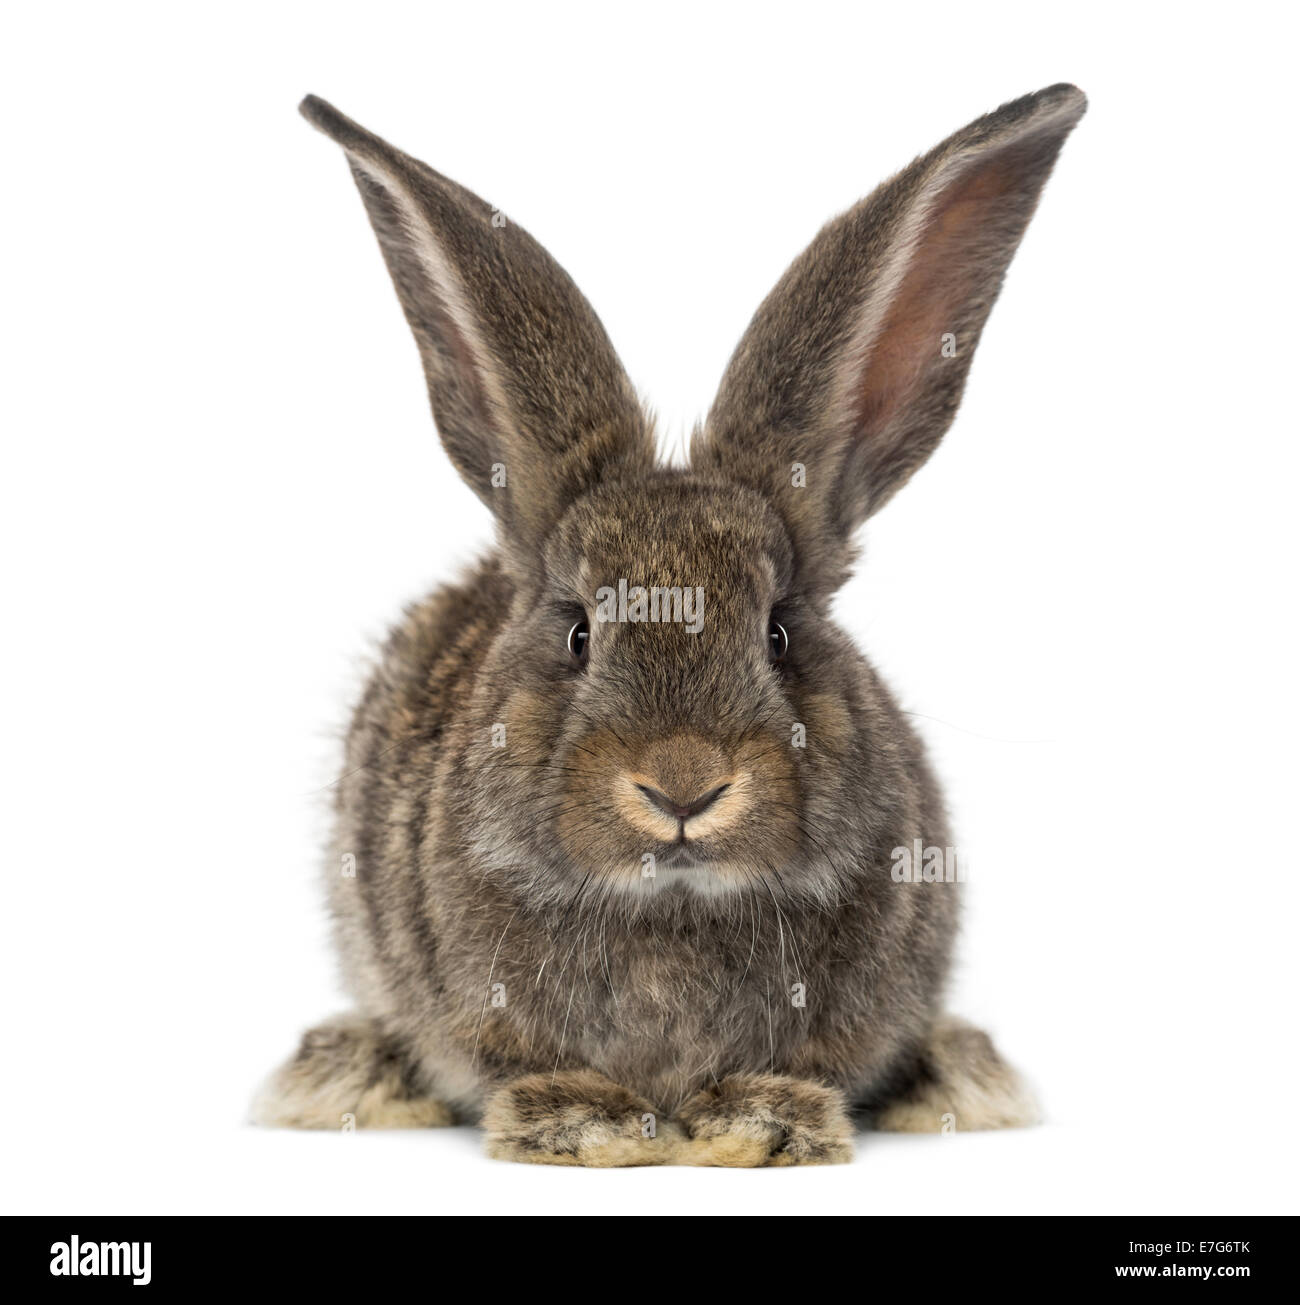 Rabbit in front of white background Photo Stock